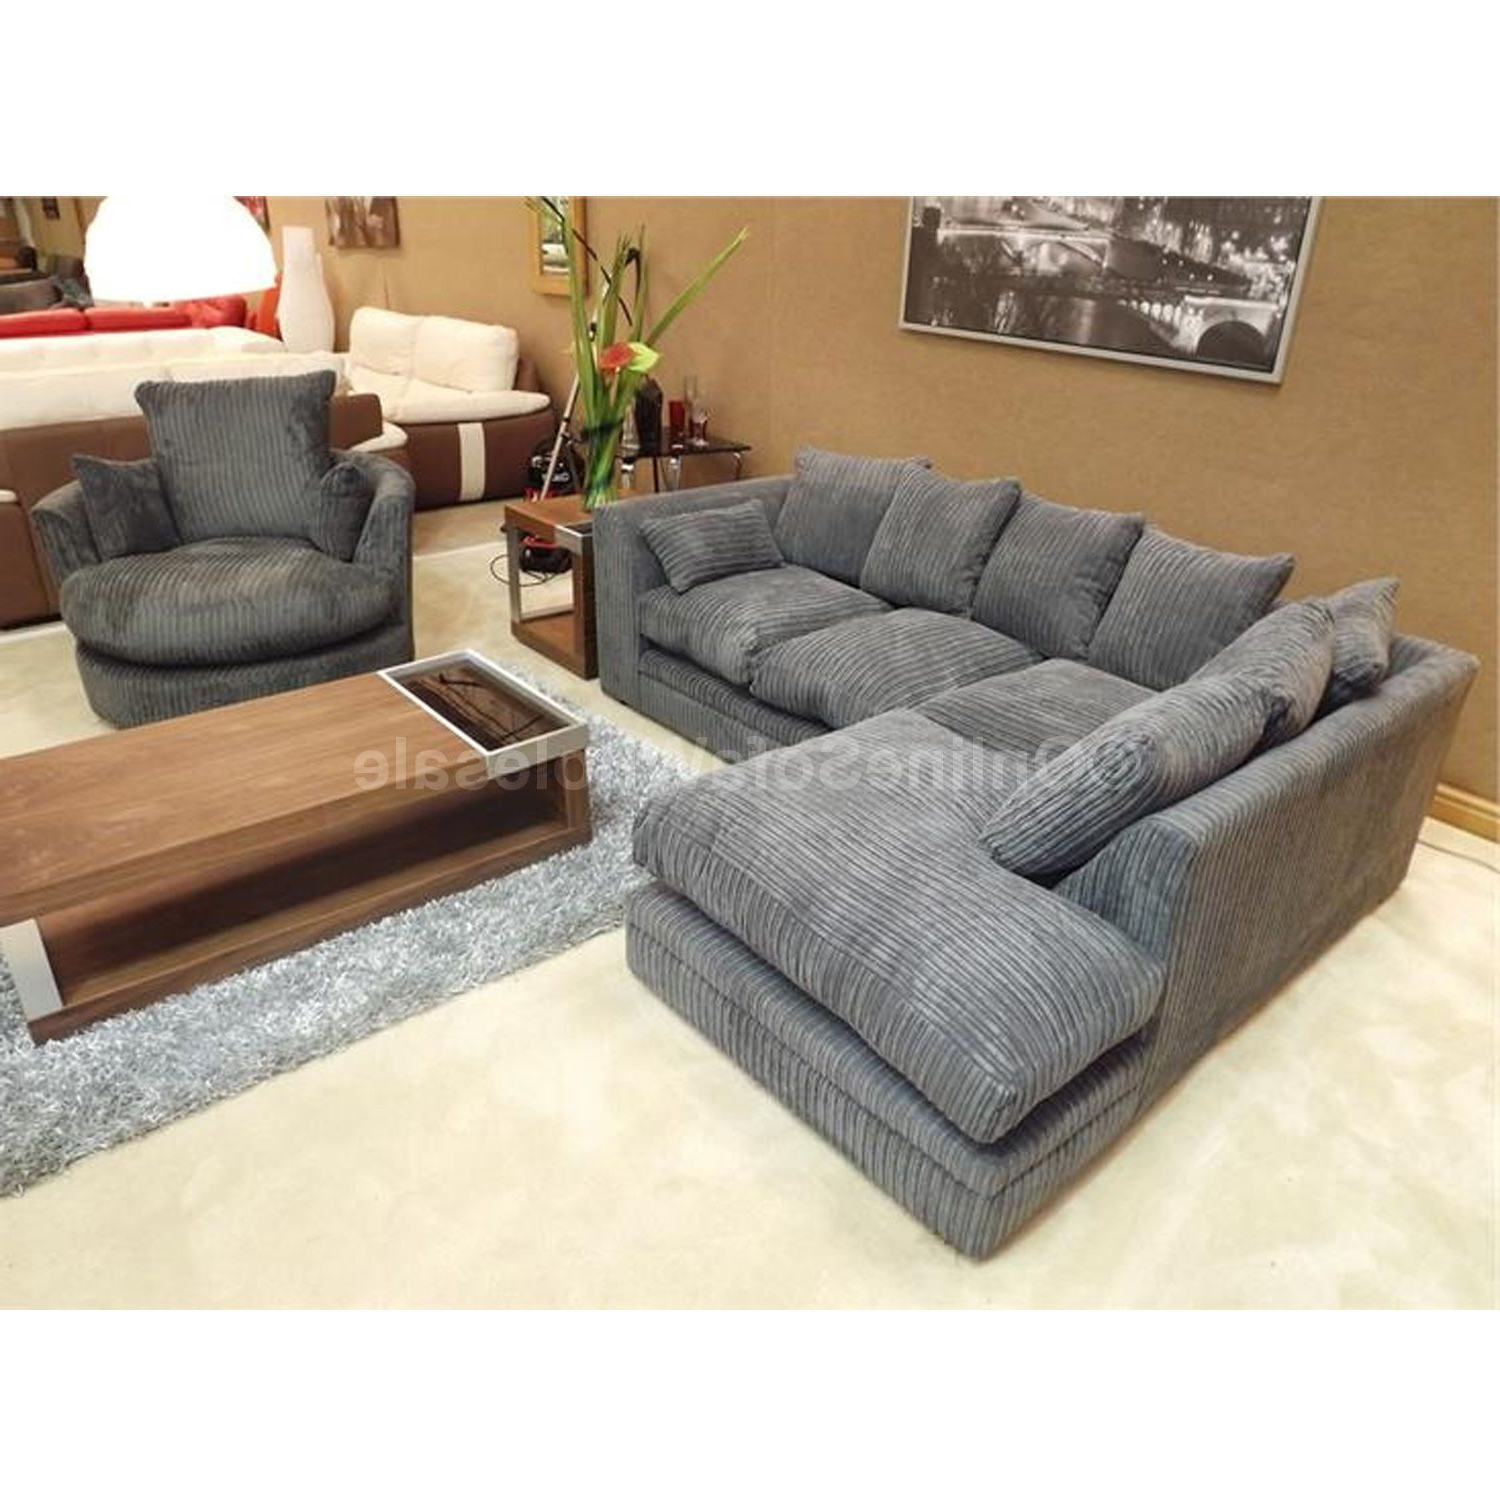 Corner Sofa And Swivel Chairs Inside Well Liked Details About Dylan Corner Sofa Left Hand Plus Swivel Chair – All (View 2 of 20)